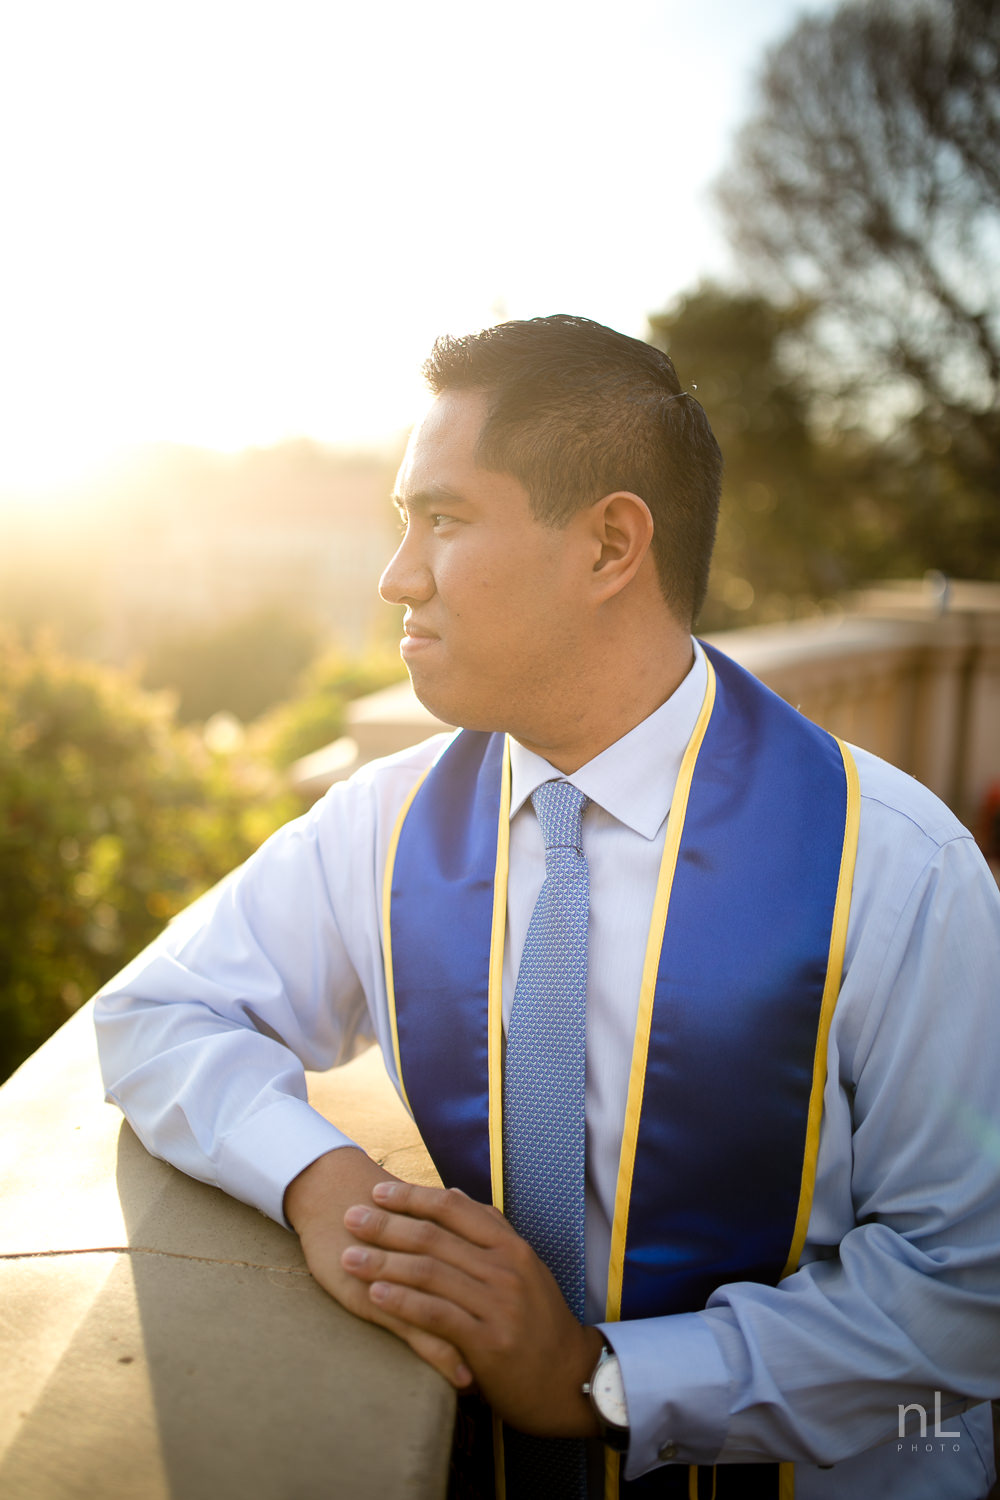 los-angeles-ucla-senior-graduation-portraits-7167.jpg